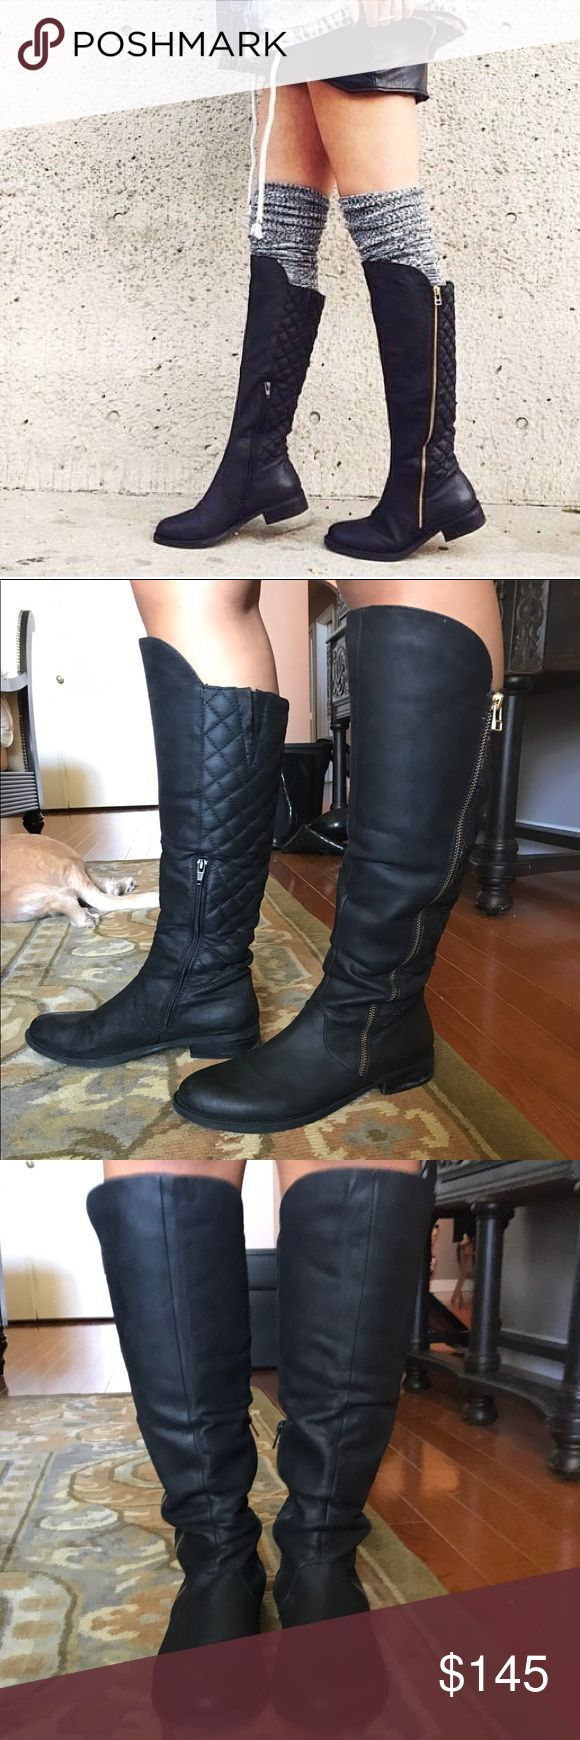 Steve Madden Quilted Black Motorcycle Riding Boots Lightly worn gorgeous tall black boots. Runs small. I am typically a 7/ 7 1/2 and these fit well. Price negotiable Steve Madden Shoes Over the Knee Boots